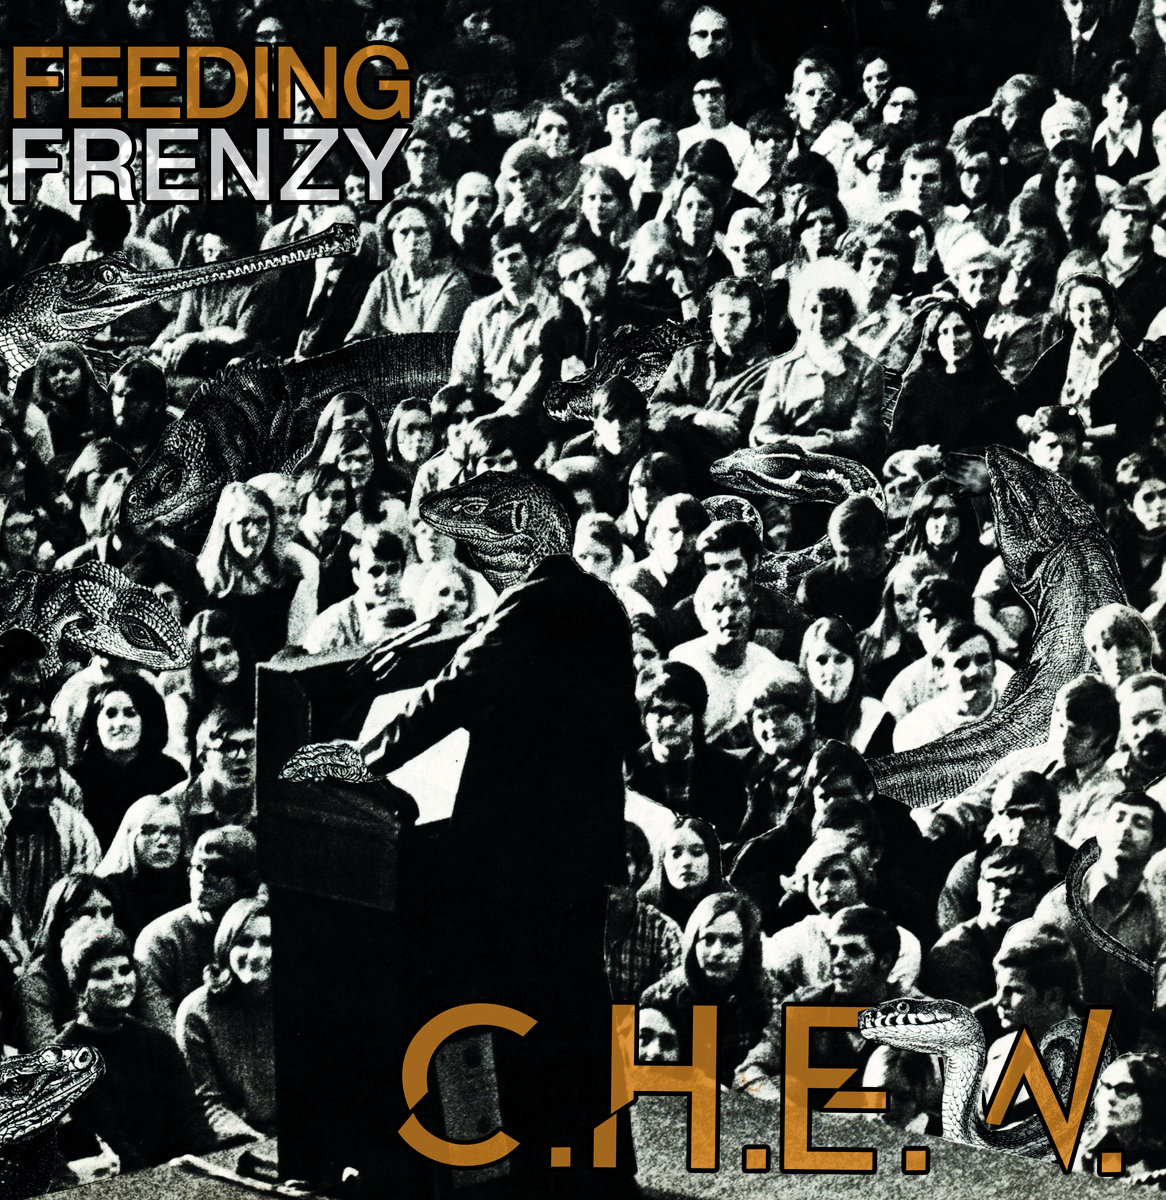 "Feeding Frenzy by C.H.E.W. - HARDCORE PUNK AT ITS MODERN DAY FINEST. CHEW HOLD NOTHING BACK ON THEIR FEEDING FRENZY LP AND ARE HERE TO BRING PAIN AND WAR. I FEEL THE NEED TO TYPE THIS REVIEW IN ALL CAPS BECAUSE THAT'S HOW THIS MUSIC MAKES ME FEEL. LIKE IM MAKING A STATEMENT. AND ITS LOUD. AND I'M PISSED OFF. AND EVEN IF YOU CAN'T UNDERSTAND WHAT IM SAYING, YOU SHOULD HEAR IT AT IN INAPPROPRIATE VOLUME BECAUSE FUCK YOU.…and that's exactly how I like my music.As the spitfire drumroll of Feed Frenzy pollute the airwaves and a good old bottle full of hardcore punk cracks open over the side of your face, leaving your teeth gripping the root of your gum for dear life as the wide open cheek wound's blood pools in your mouth, forcing you to CHEW on your tongue as your head uncontrollably bangs to this sonic creation… I assume thats how CHEW got their name. Possibly is a scenario like that. OR perhaps CHEW might stand for something. CHEW stand for.. actually, stand against.. many things; and we'll get to that later. Rather, I'm thinking like an acrostic stye, as in Can't Hardly Earn Wages; or Come Here Eat Worms, or Continue Hating Economy Whores, OR maybe the answer is a simple Google search away… it actually means Cold Hands Elicit Worry, which makes sense, I'm just trying to creatively get my point across. Hailing from the only city more violent than their music, Chicago (with the utmost respect, I love that city and like them more for being from there), CHEW have created a perfectly balanced, yet utterly chaotic, modern day hardcore punk that could be stacked against the best of them. The thing is those classic hardcore bands and records are even more relevant today than they were then, which is perhaps beautifully timed irony or simply a cruel twist of fate.. time will tell.. but CHEW are not waiting around to find out. And that's the thing you can't say about most (if any) pop music.Punk has a place not only in hearts and heads of the educated rejects and rebels alike, but in politics and history. Punk exceeds expectations by verbally decreasing them and spitting them in your face. Good punk gets the point across and makes you FEEL something and think something other than ""sweet riff"" or the next move you're gonna pull off in the pit; it makes you use whats encapsulated in that skull of yours; out makes you think. It challenges mainstream and personal morals, ideals, beliefs, feelings, and sometimes even sexual orientation. CHEW accomplish all of the above AND THEN SOME on Feeding Frenzy. From the first easily audible lyrics on the record being ""I TOLD YOU TO LEAVE ME THE FUCK ALONE"" uppercutted via vocal chords of Doris Graves proving female fronted hardcore punk still hasn't earned the respect it deserves and she's about to change that. Being as CHEW are not a band that is afraid to change things, this is sung like a warning - and should be interpreted as such. It is not an invitation. It's the part in every horror movie that you squirm in your seat and beg the B-grade actress to not go up the stairs as a disguised lunatic with a hardware store receipt longer than her list of high school regrets is about to plant a Phillips head through her carotid artery. You didn't leave me the fuck alone, so I made this fucking record, CHEW Kung Lao-style hurls the LP into the face of The Man, splitting it down the middle, and sticking the impenetrable punk LP to the wall behind. THAT is how I not only imagine the attitude and inspiration to this record, but the writing and recording process as well. It is recorded with such ferocity, focus, aggression, and overly thought out arguments that if it doesn't get you rising ups in arms then nothing will - check your pulse - because your heart might've been chewed out.Female fronted punk rock is certainly nothing new but in the current climate its a bit refreshing to see a punk band from Chicago bringing hardcore music back to relevant shores and making relevant points. The songs just hit you over and over again producing the same painfully wonderful result yet it feels like its from a different perpetrator each time… different weapon.. same result. Not penetrating through the gates of hardcore but rather varying their sound slightly bringing in influences of noise, blues, thrash, and anything from the Bad Brains to Poison Idea in the mix. Feeding Frenzy is just barley over a half of an hour long, but it provides enough punches, licks, scrapes, bruises, blood-on-the-strings rhythm, and vilely fast percussion for a full discography of society-shredding hardcore. And they even have time for a mood-setting instrumental interlude on Part I of the title track and a stomp-worthy 6-plus minute epic conclusion of ""Belly Up"", which should leave you just that. The record is flawless in its ability to deliver and demonstrate genuine creativity and musicianship within the confines for 3 chords and the mo-ther-fuck-ing truth, my friends. Hats off, and heads off, for CHEW.*FELLOW PITTSBURGH FREAKS: CATCH THEM AT ROCK ROOM OCTOBER 21ST!! *… we'll be there.Rating: 5/5Gym Rating: 6/5Check 'em out:https://www.facebook.com/chewpunx/http://chewpunx.bandcamp.com"